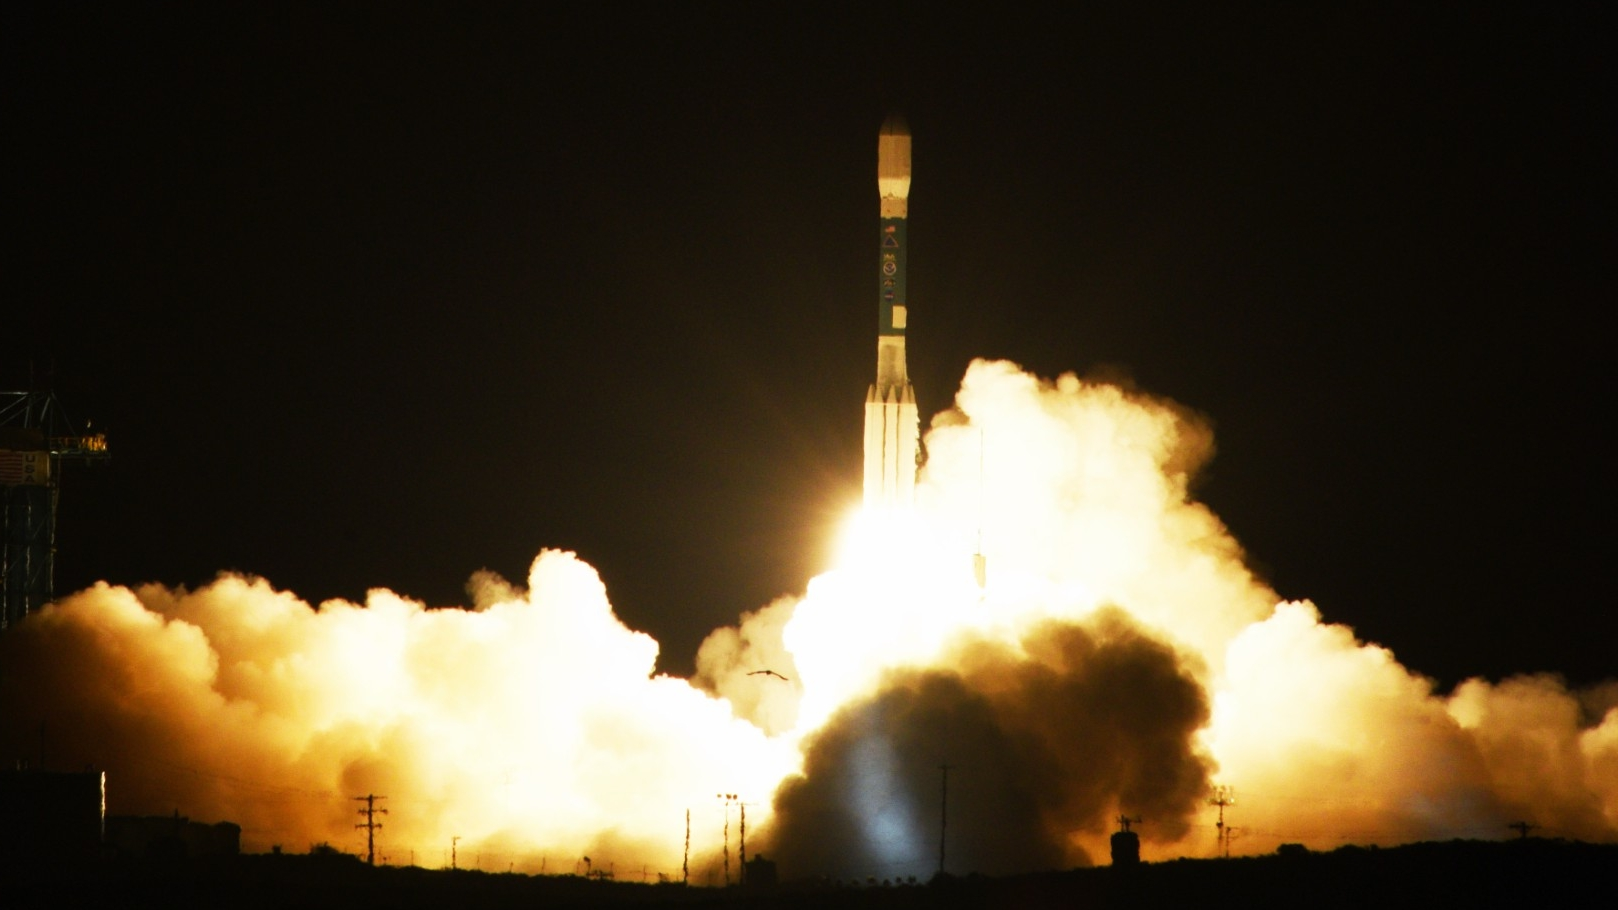 A United Launch Alliance Delta II rocket carrying a NASA/National Oceanic and Atmospheric Administration satellite was successfully launched from Vandenberg Air Force Base